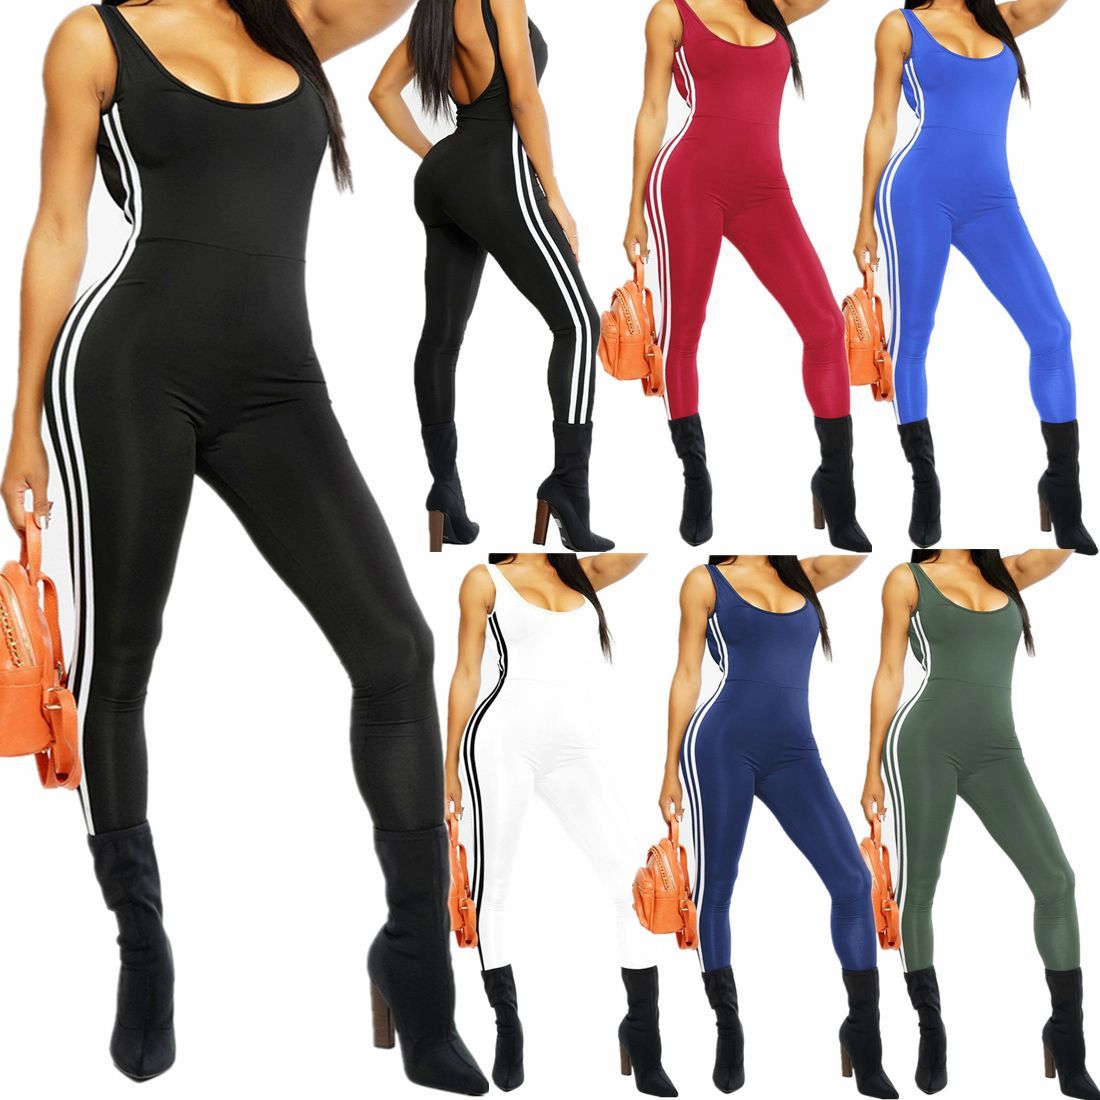 cb0118f06e Women Jumpsuit Romper Bodycon Playsuit Clubwear Long Trousers Party ...